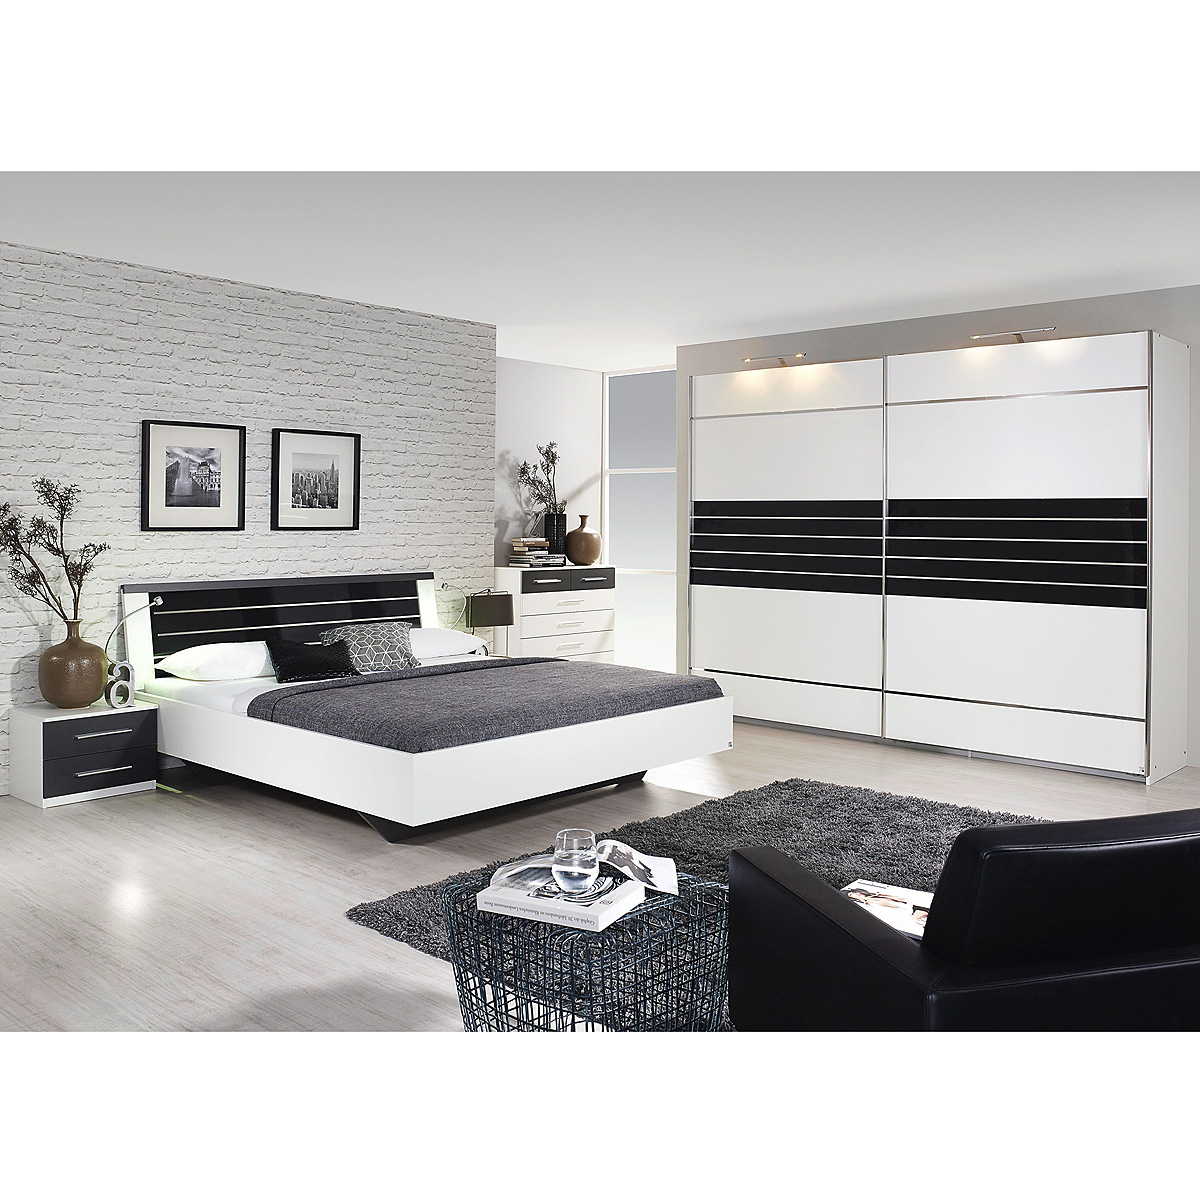 schlafzimmer set nienburg bett schrank nako wei grau metallic und glas basalt ebay. Black Bedroom Furniture Sets. Home Design Ideas